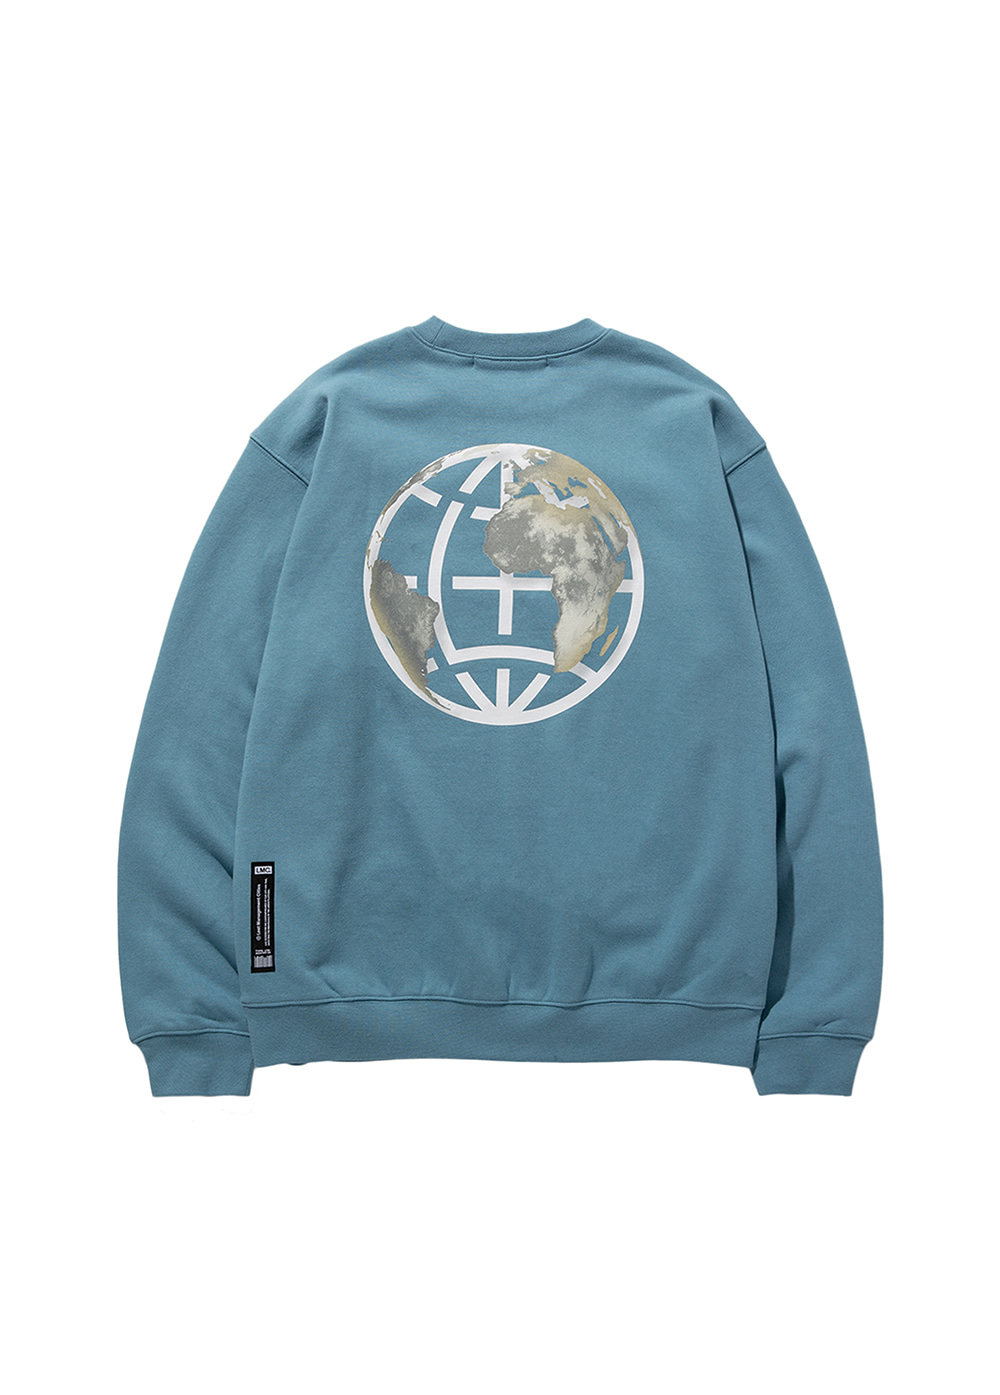 LMC EARTH LOGO SWEATSHIRT sky blue